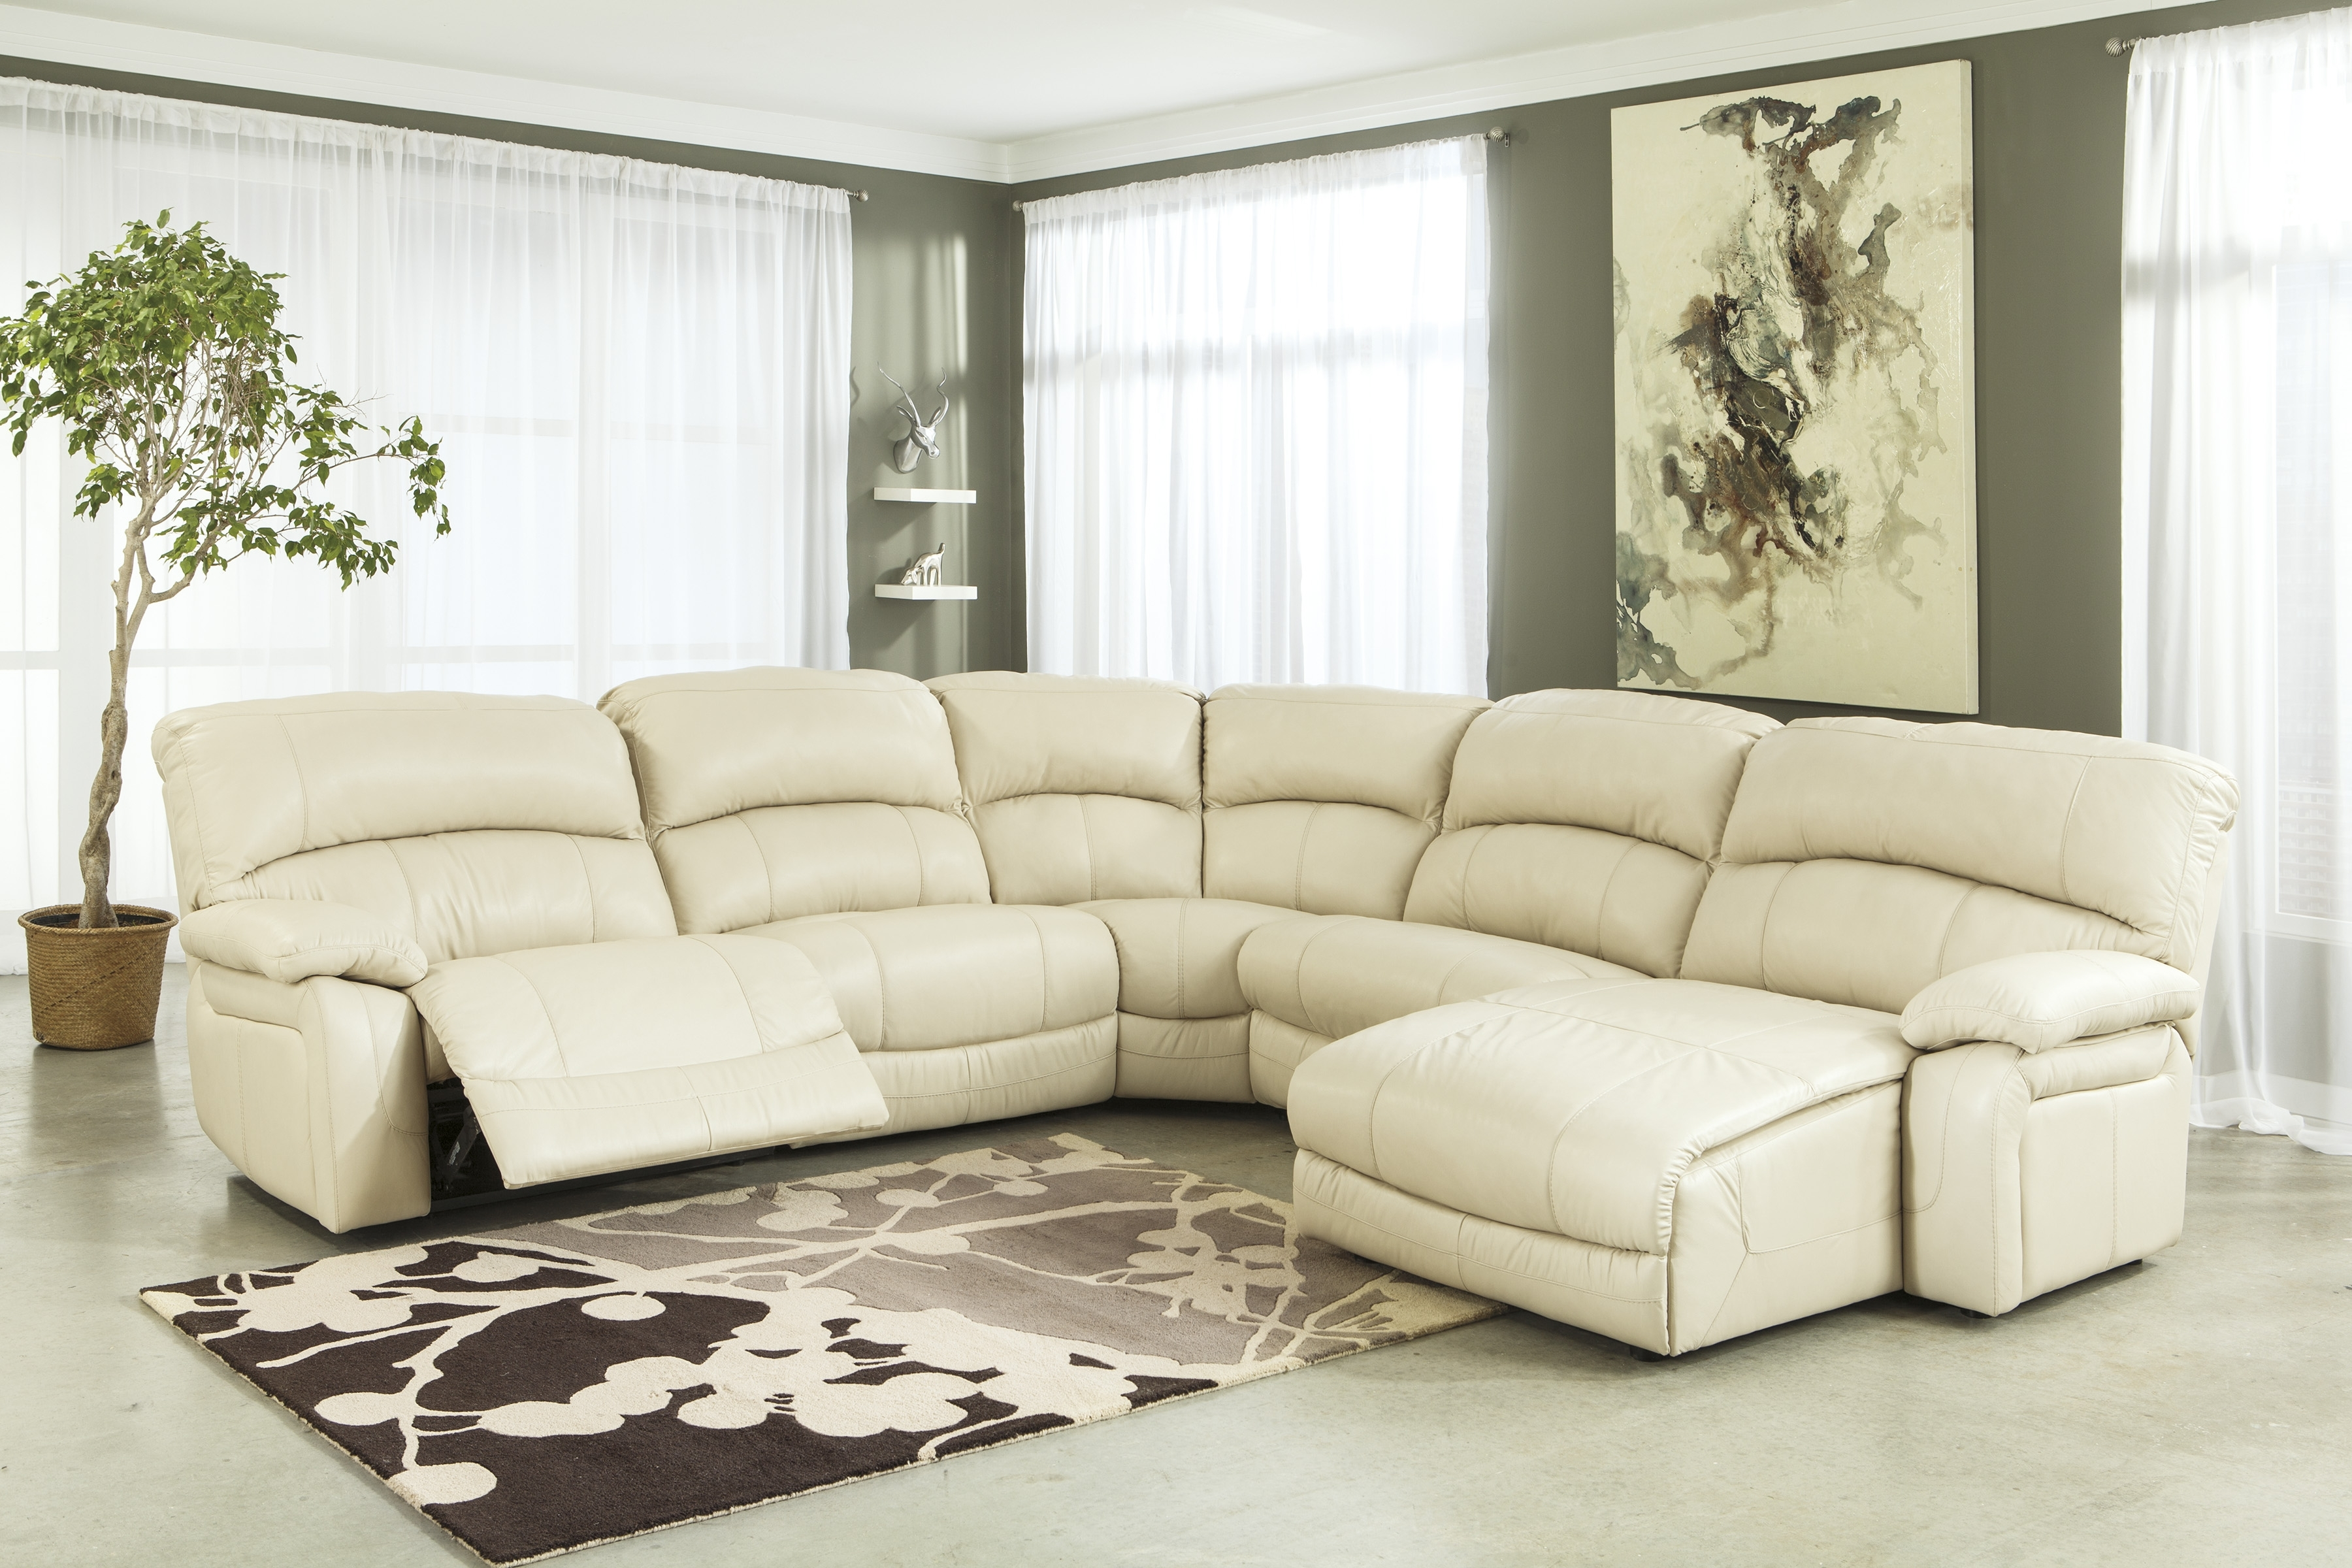 Macy's Power Recliner Sofa Sectional Couches Big Lots Power Inside Popular Cream Chaise Sofas (View 12 of 15)